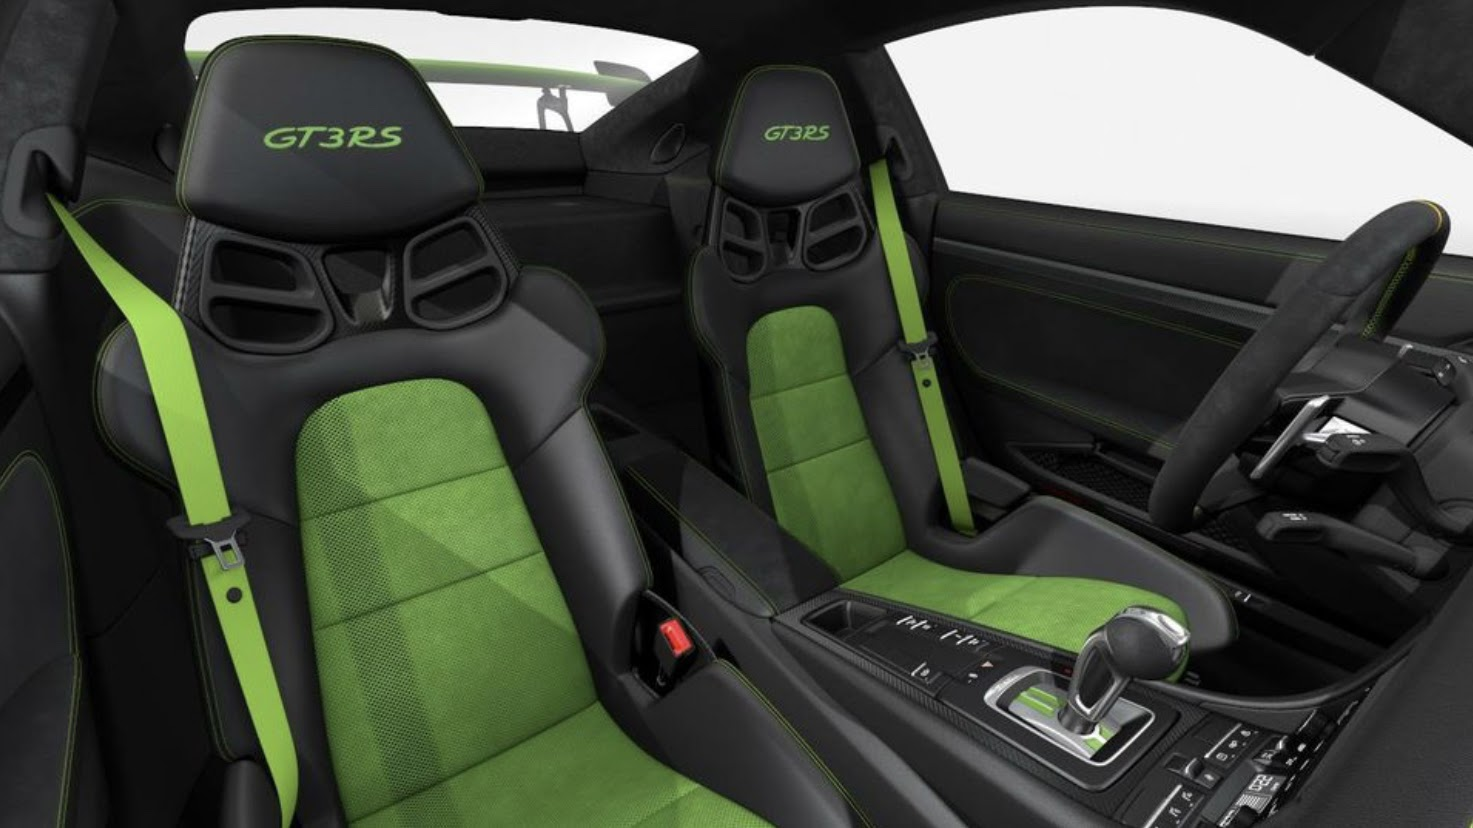 New Porsche 911 Gt3 And Gt3 Rs Full Bucket Racing Seats Review And Guide Car Engineer Learn Automotive Engineering From Auto Engineers